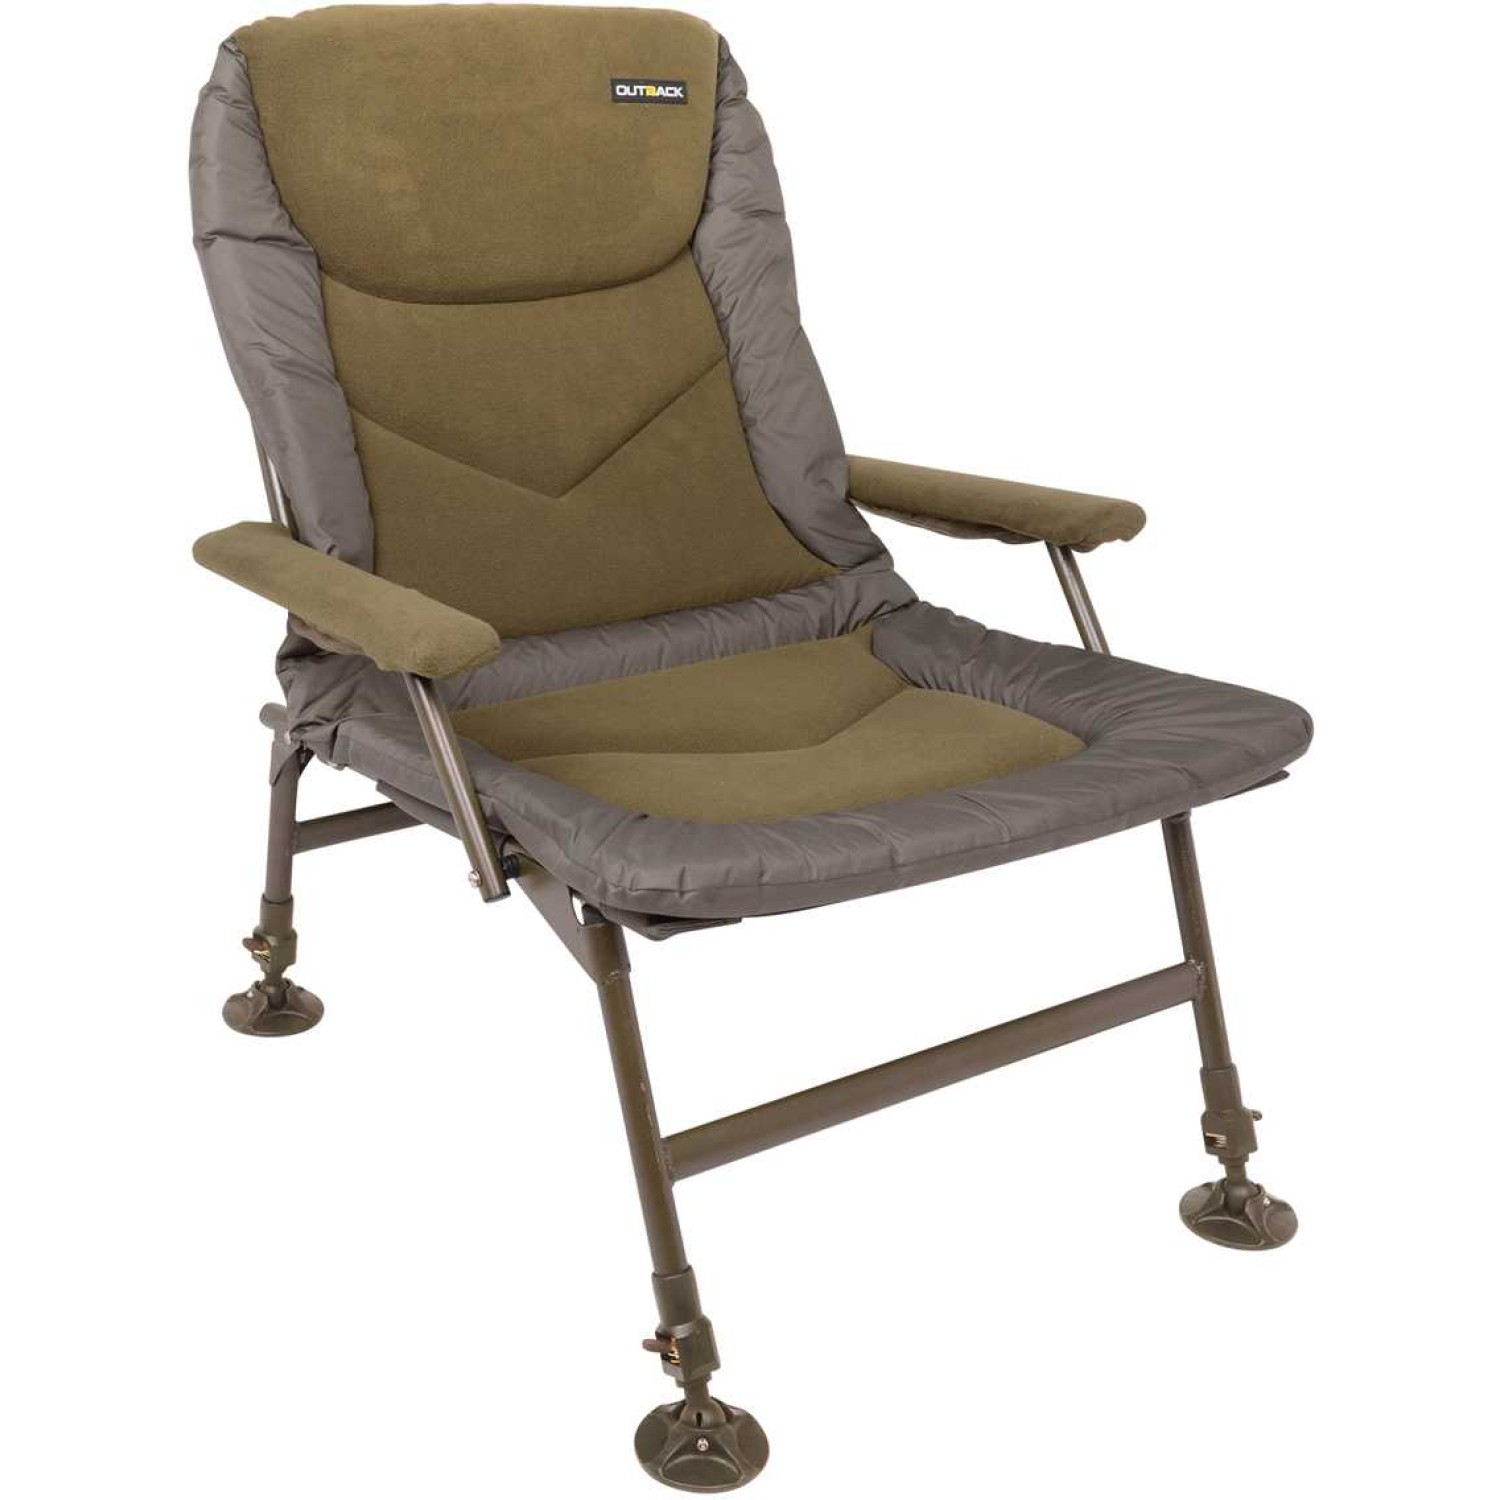 Spro Strategy Outback Relax Chair Wt Arm Rest